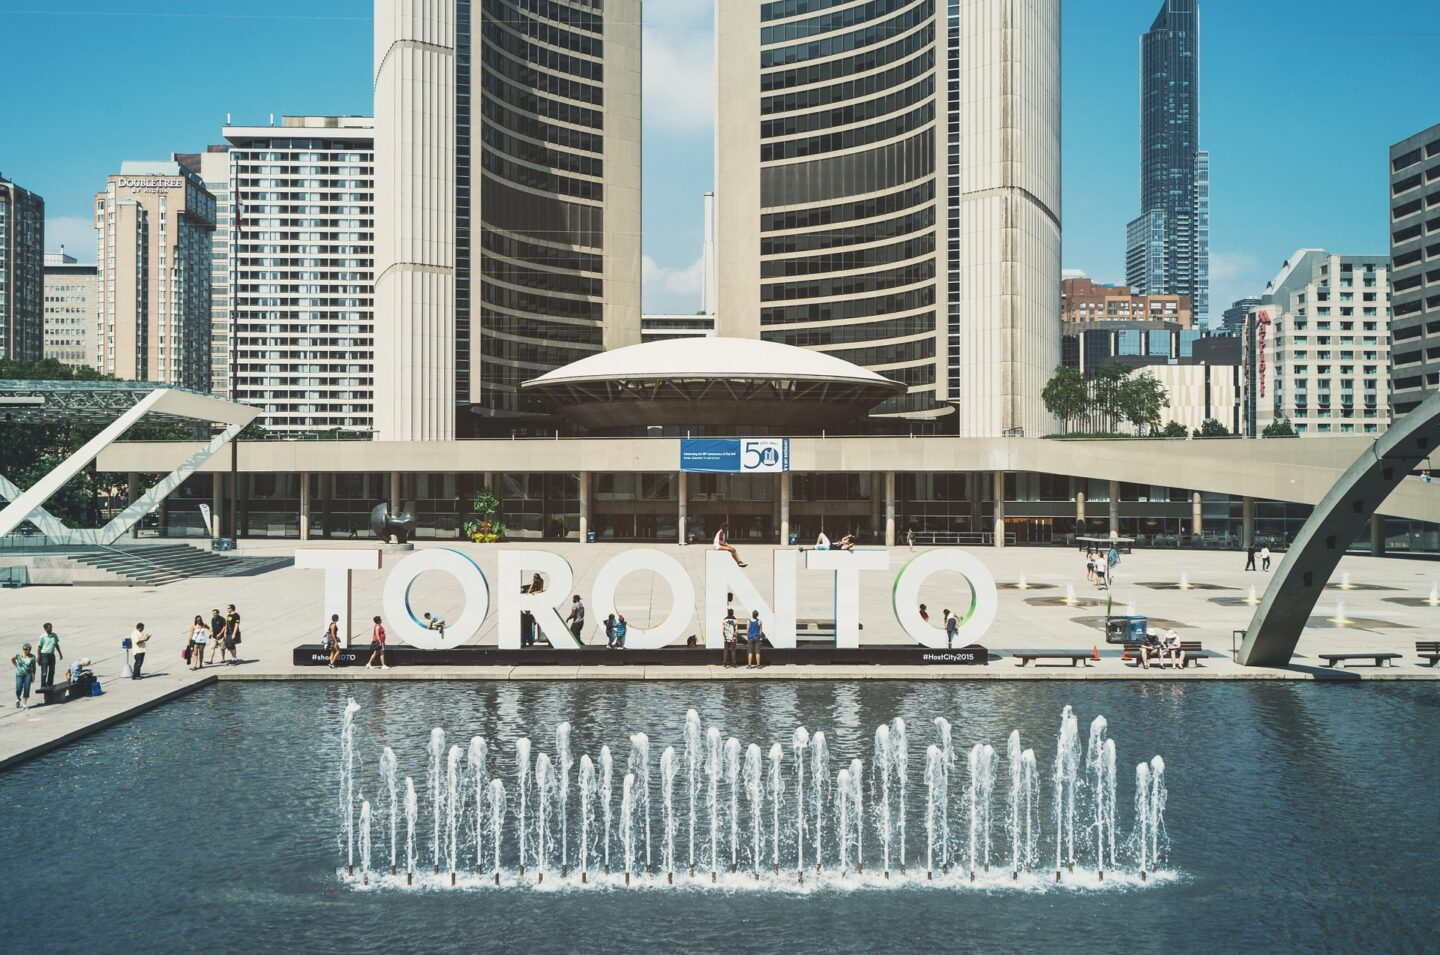 Canada: Top Tips For A Great Trip To Toronto